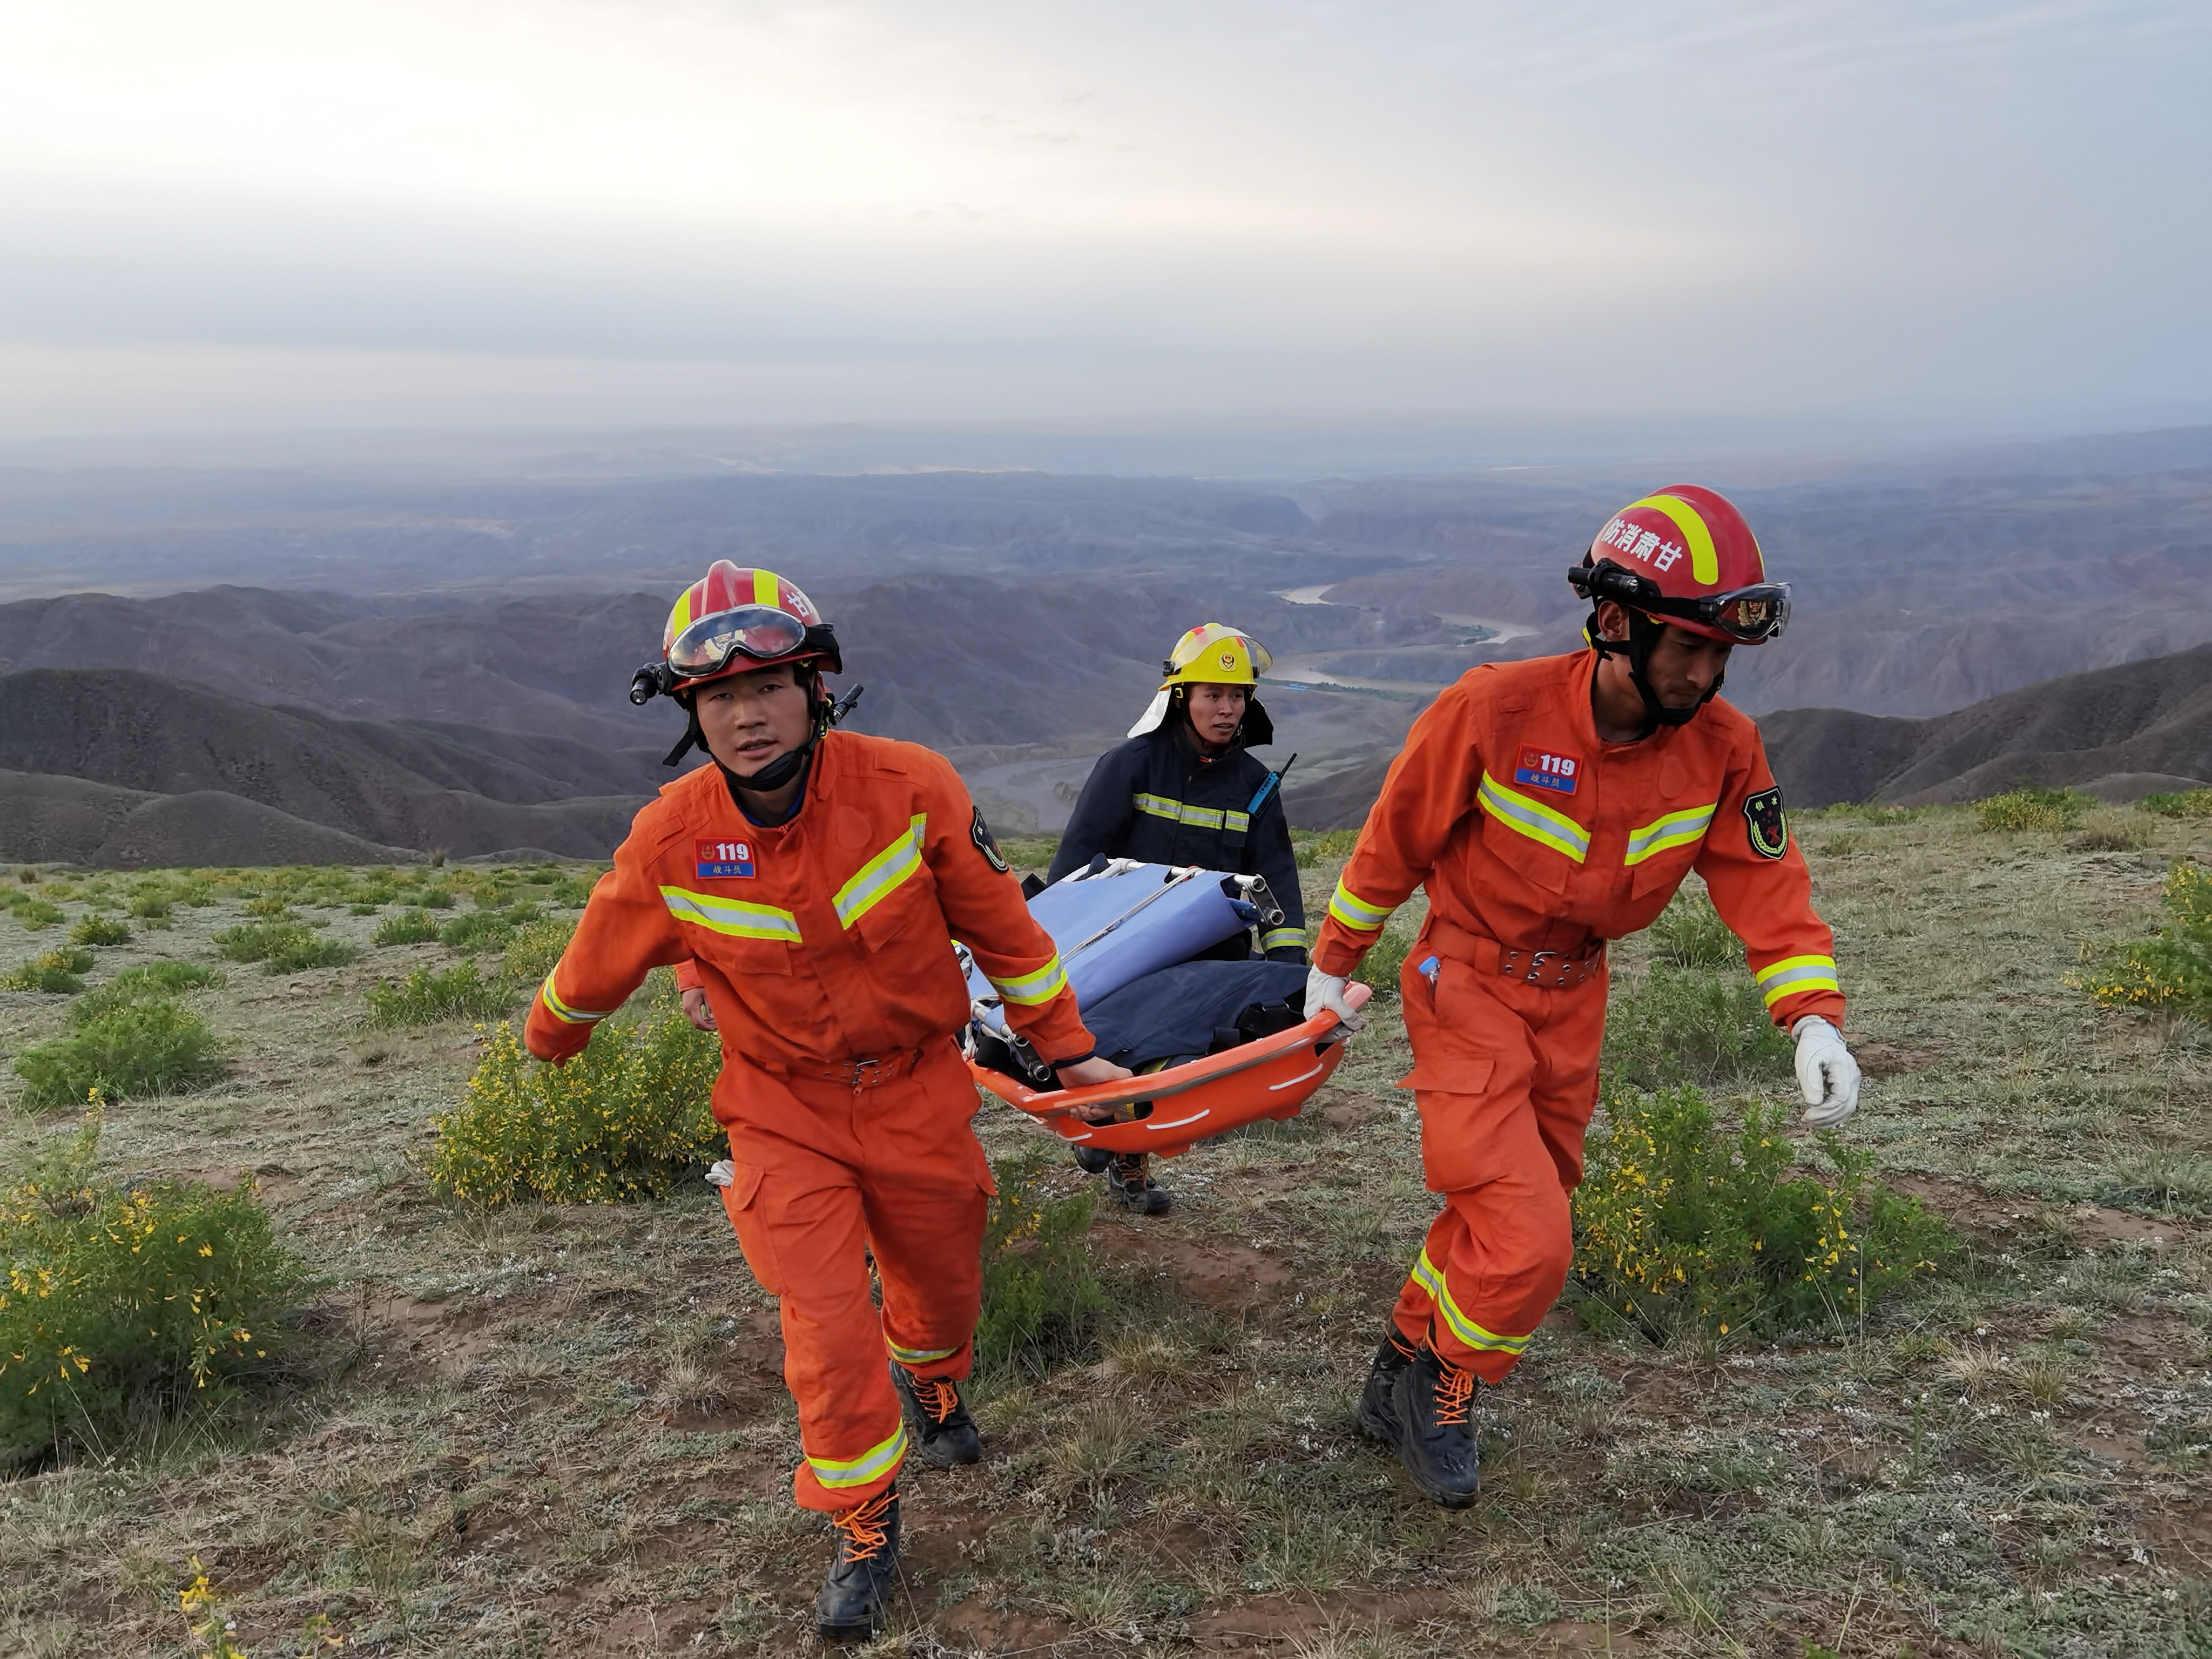 Rescue workers carry a stretcher as they work at the site where extreme cold weather killed participants of an 100-km ultramarathon race in Baiyin, Gansu province, China May 22, 2021. Picture taken May 22, 2021. cnsphoto via REUTERS